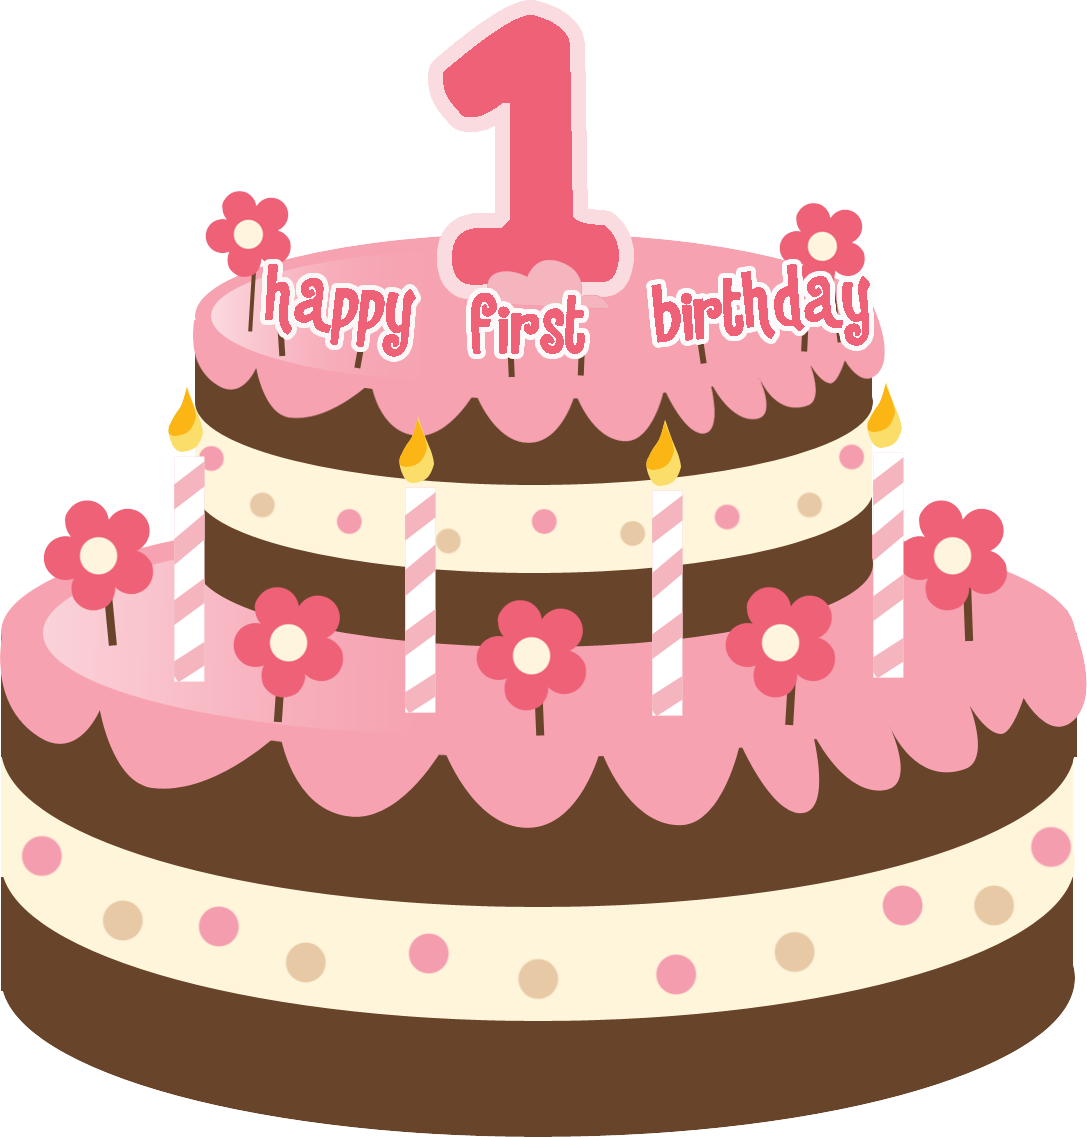 Birthday cake clipart png. Fall clip art of